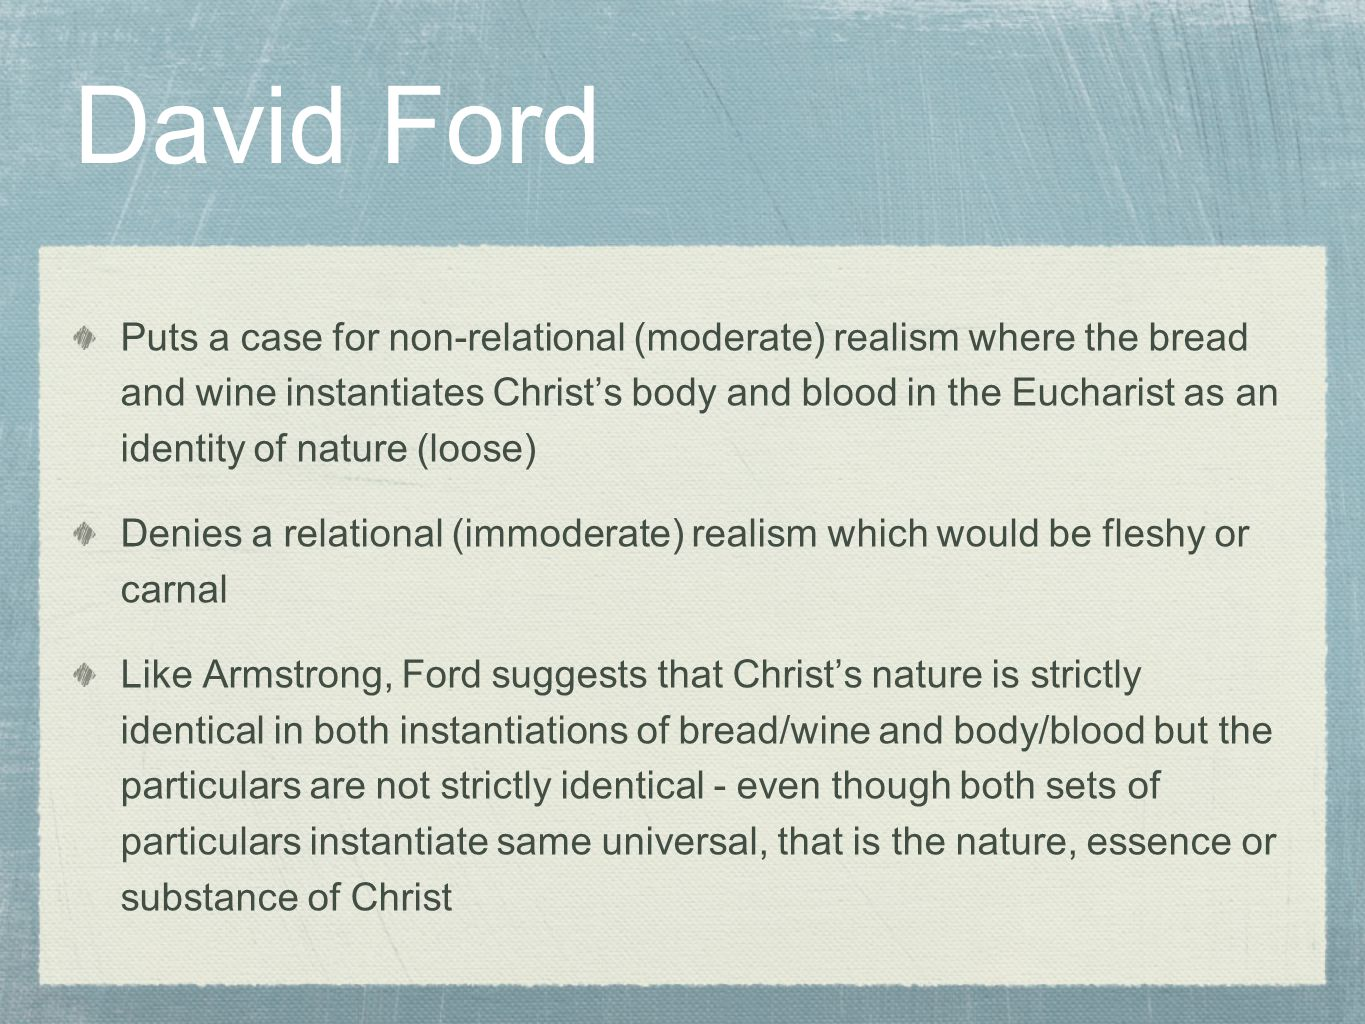 David Ford Puts a case for non-relational (moderate) realism where the bread and wine instantiates Christ's body and blood in the Eucharist as an identity of nature (loose) Denies a relational (immoderate) realism which would be fleshy or carnal Like Armstrong, Ford suggests that Christ's nature is strictly identical in both instantiations of bread/wine and body/blood but the particulars are not strictly identical - even though both sets of particulars instantiate same universal, that is the nature, essence or substance of Christ